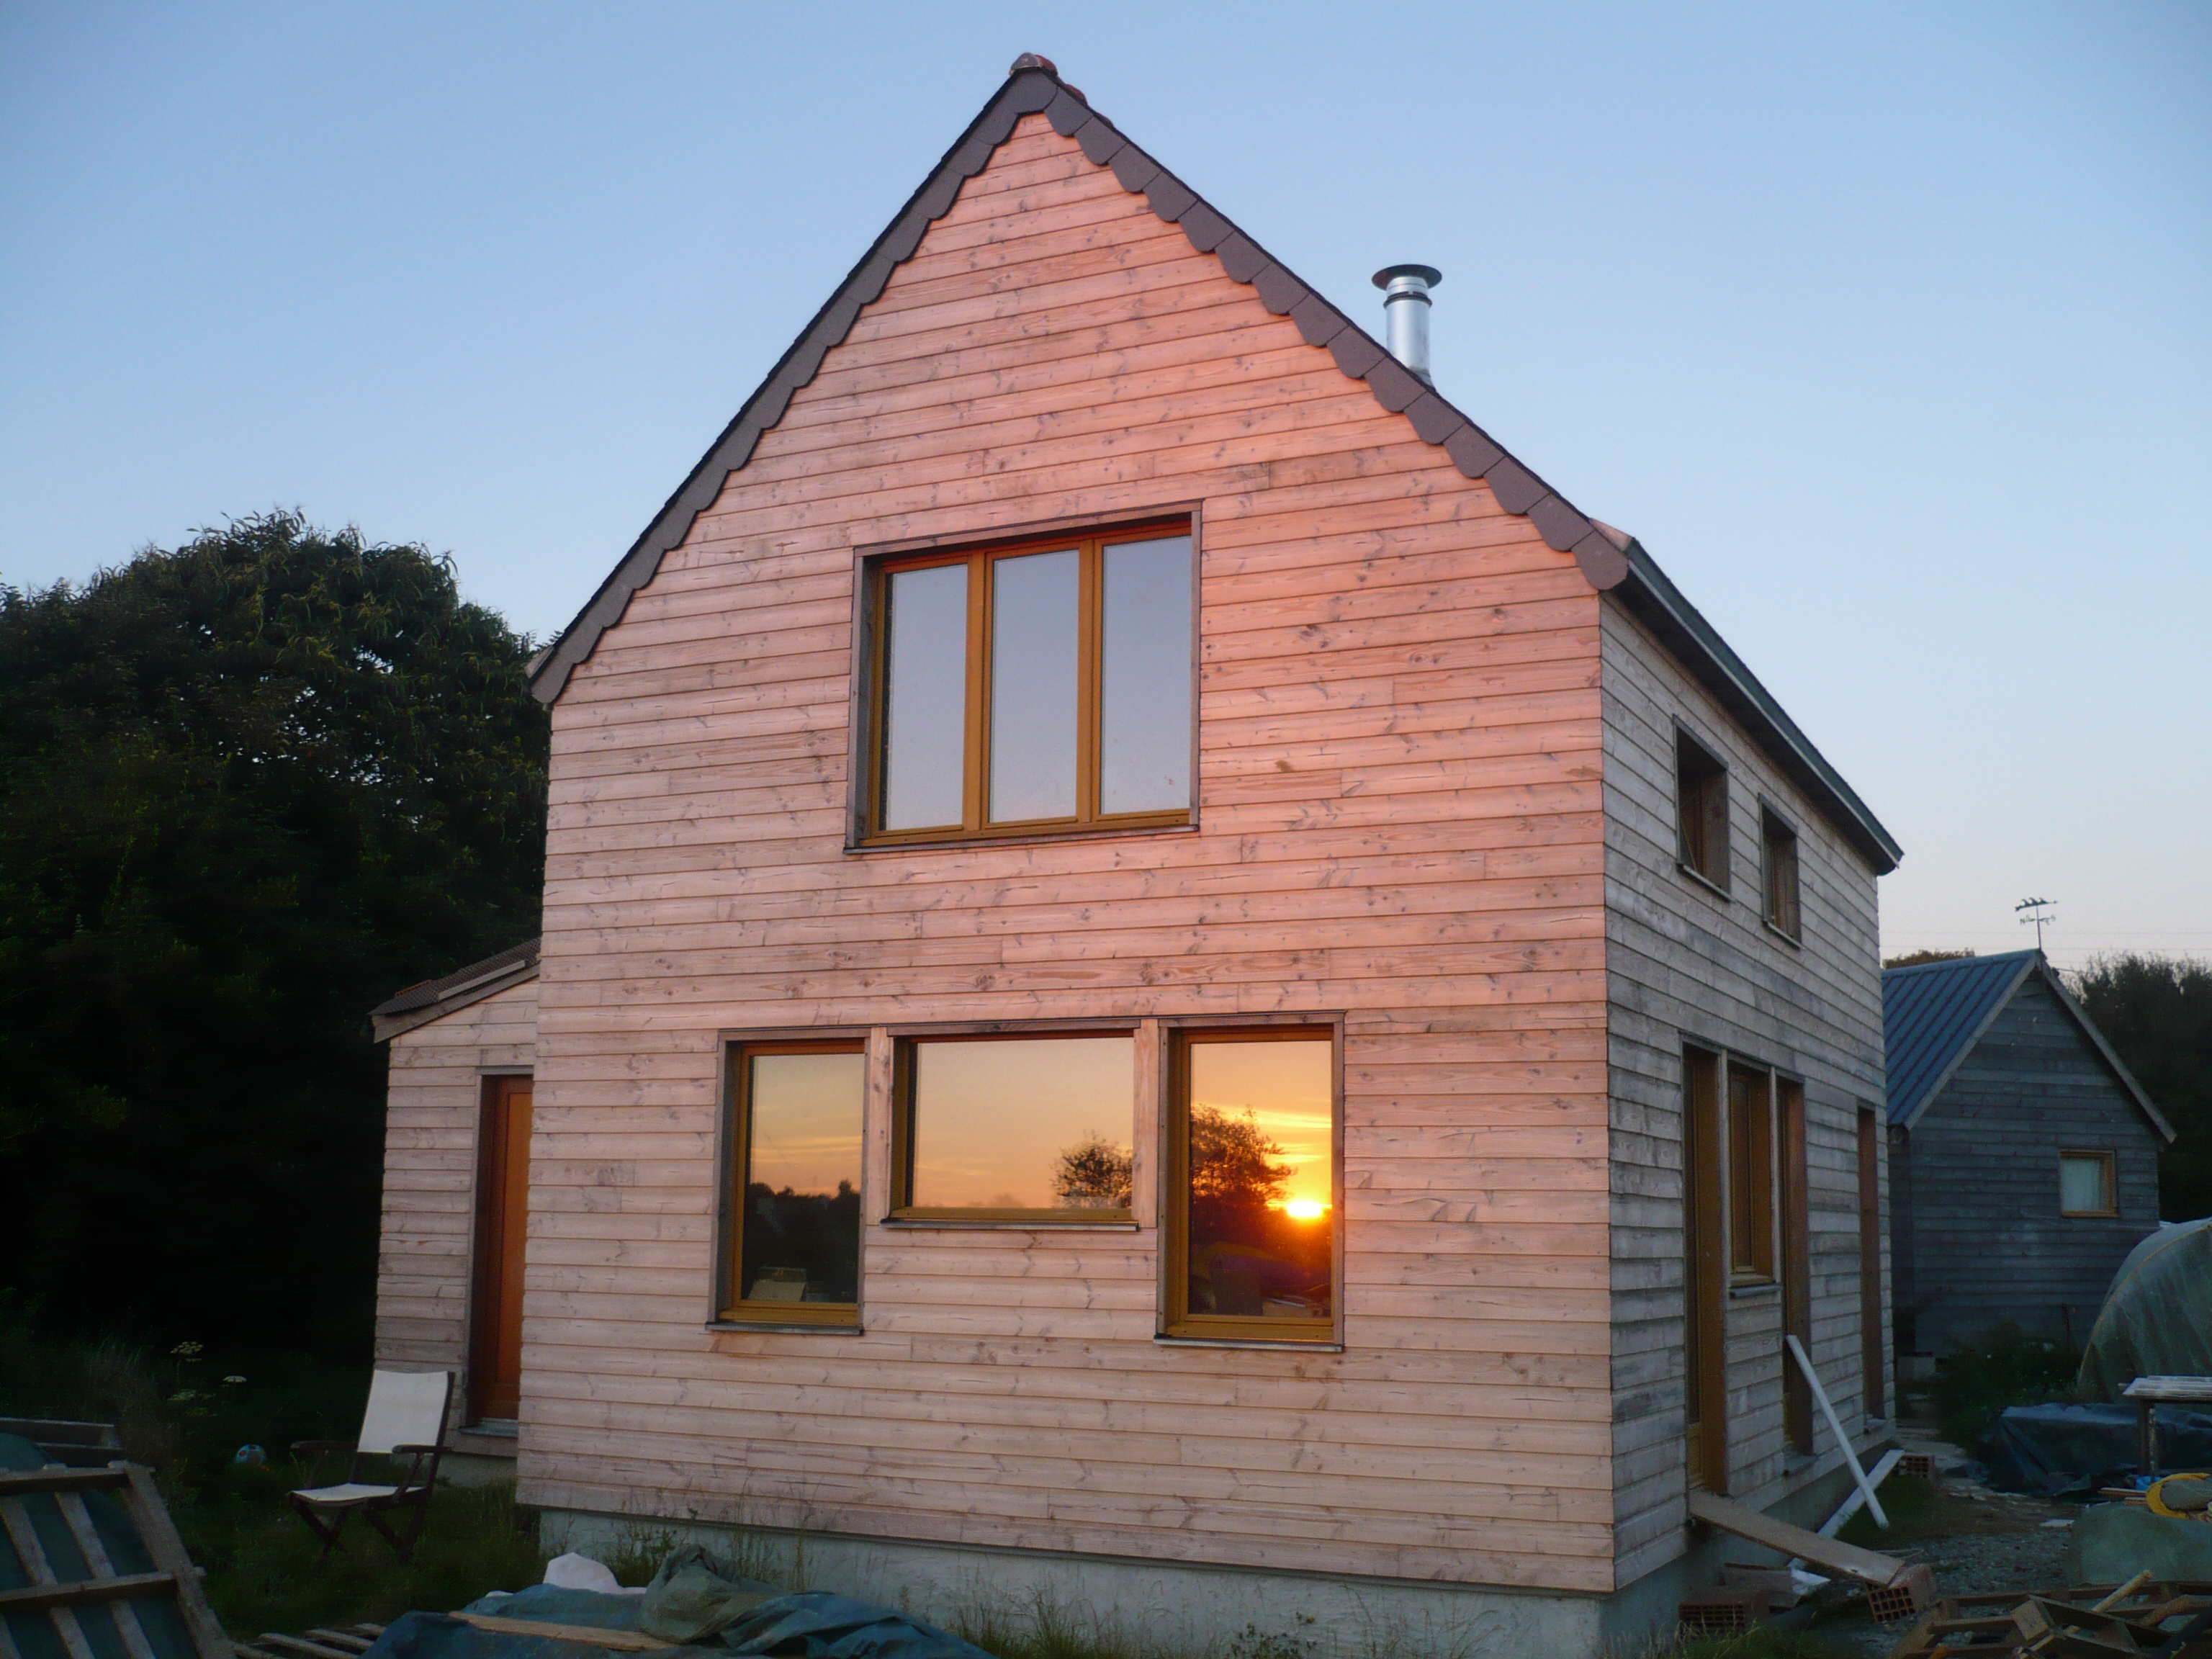 Tyerra architectes architecture habitat sain finist re for Autoconstruction maison en bois